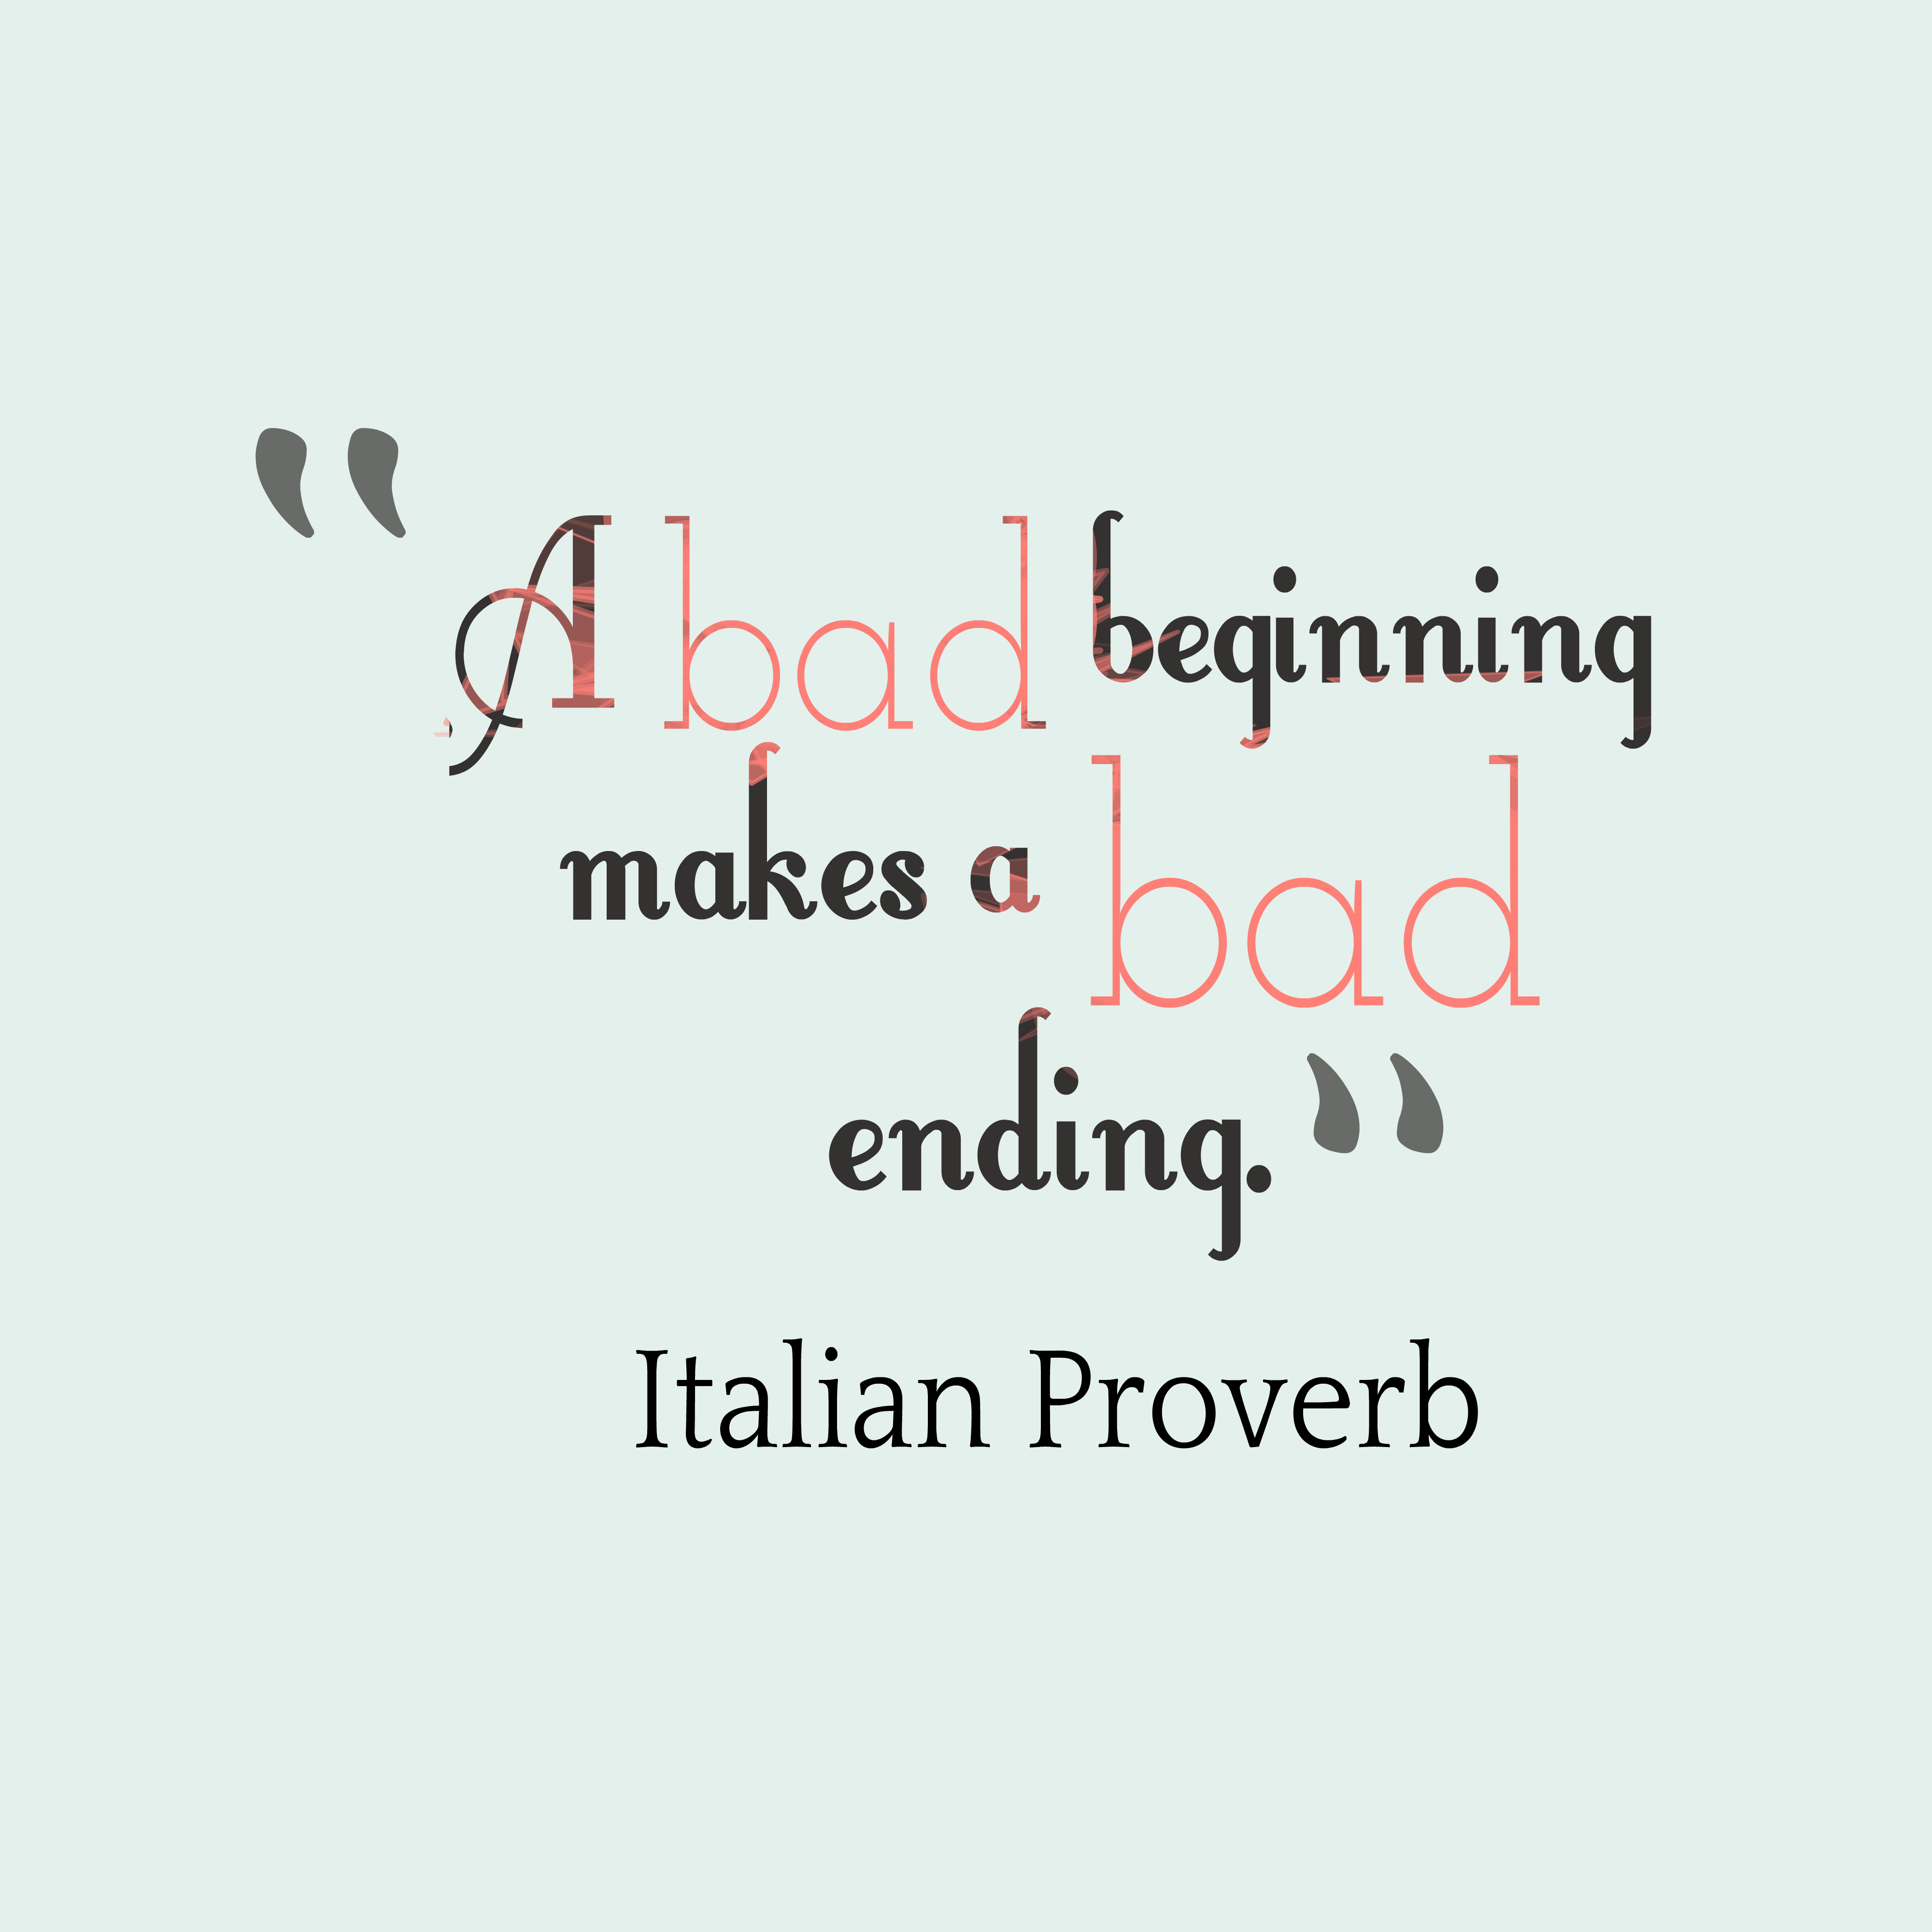 http://www.quotescover.com/wp-content/uploads/A-bad-beginning-makes-a__quotes-by-Italian-Proverb-44.png